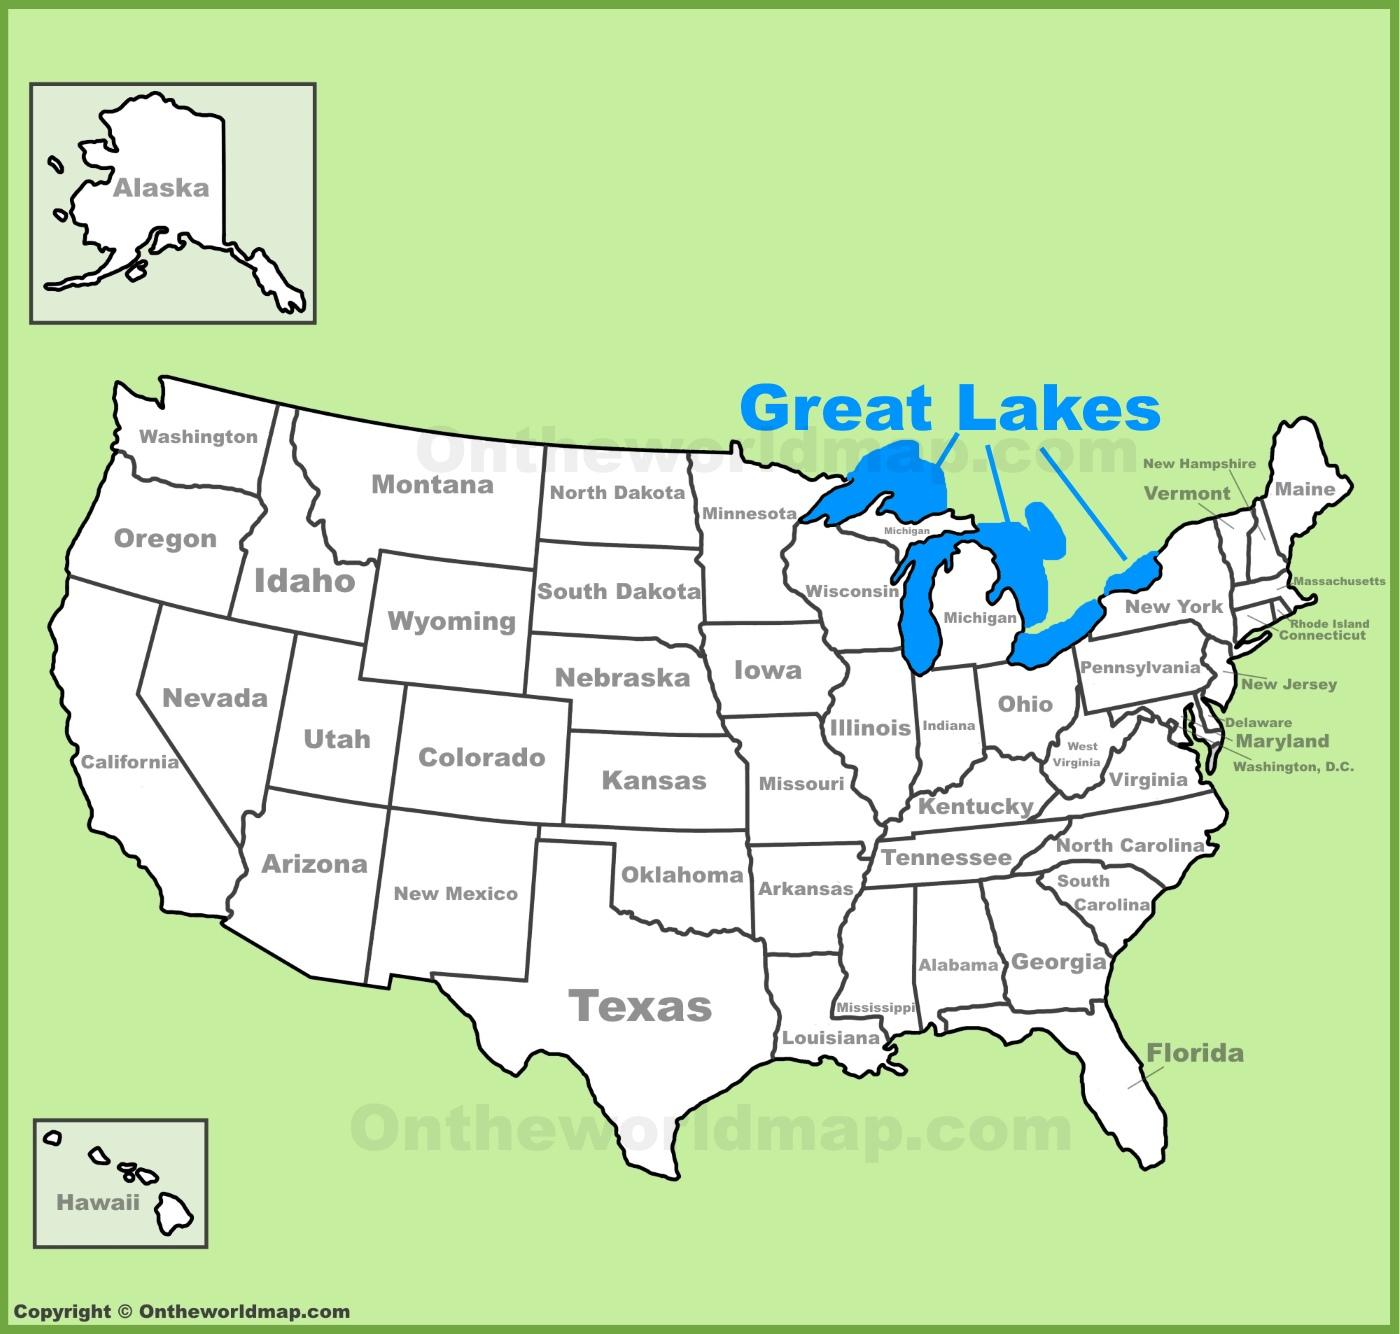 Map Great Lakes Great Lakes Maps | Maps of Great Lakes